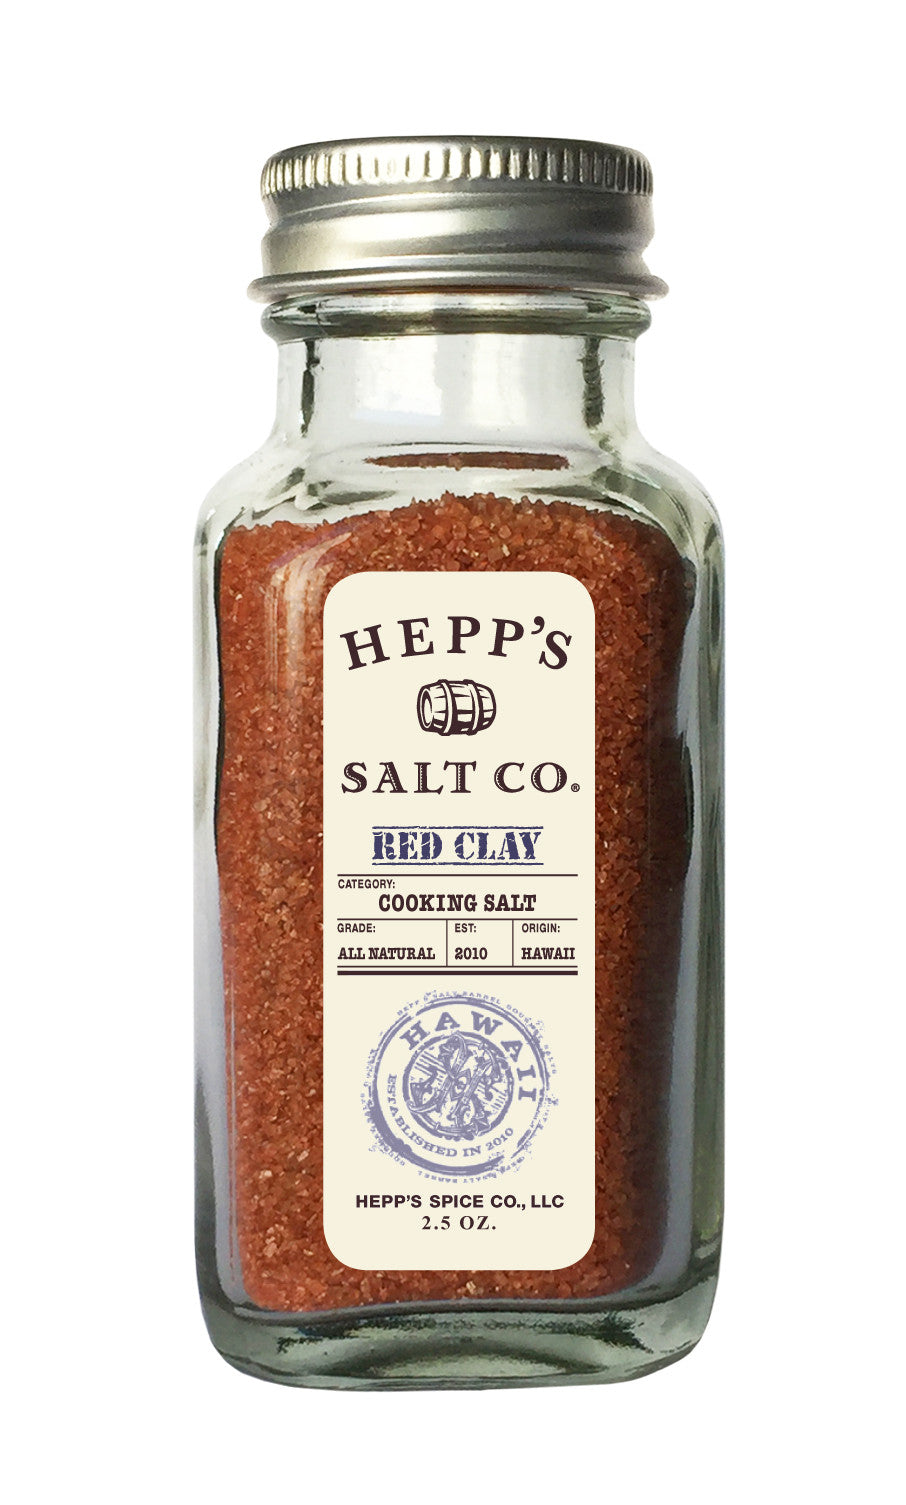 Red Clay Sea Salt - HEPPS SALT CO.